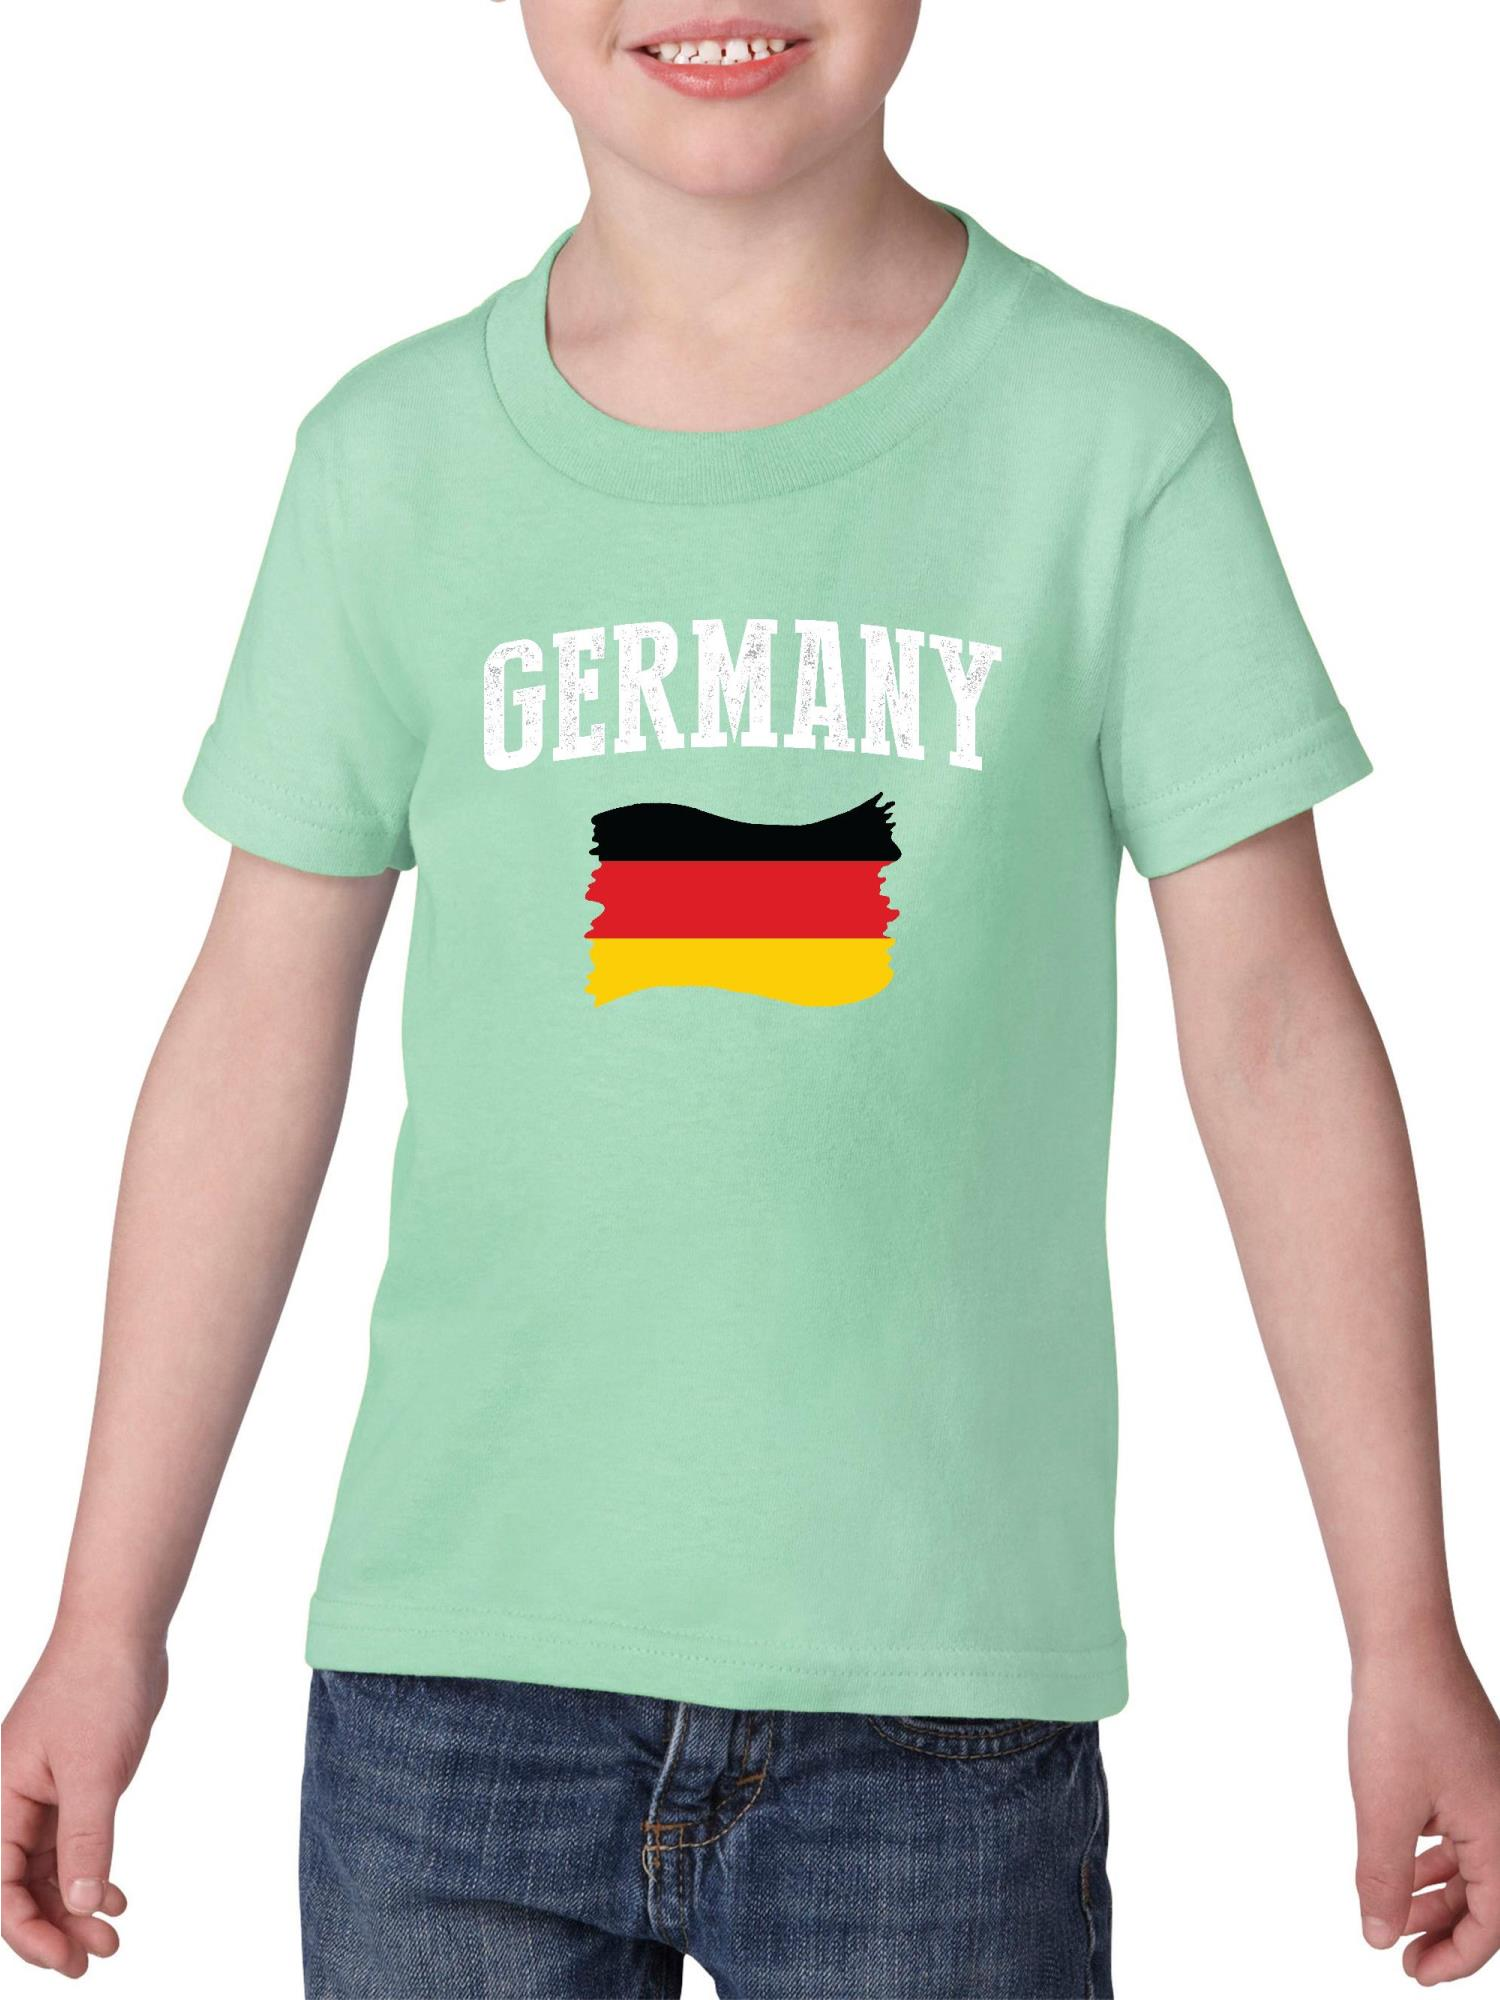 Germany Heavy Cotton Toddler Kids T-Shirt Tee Clothing